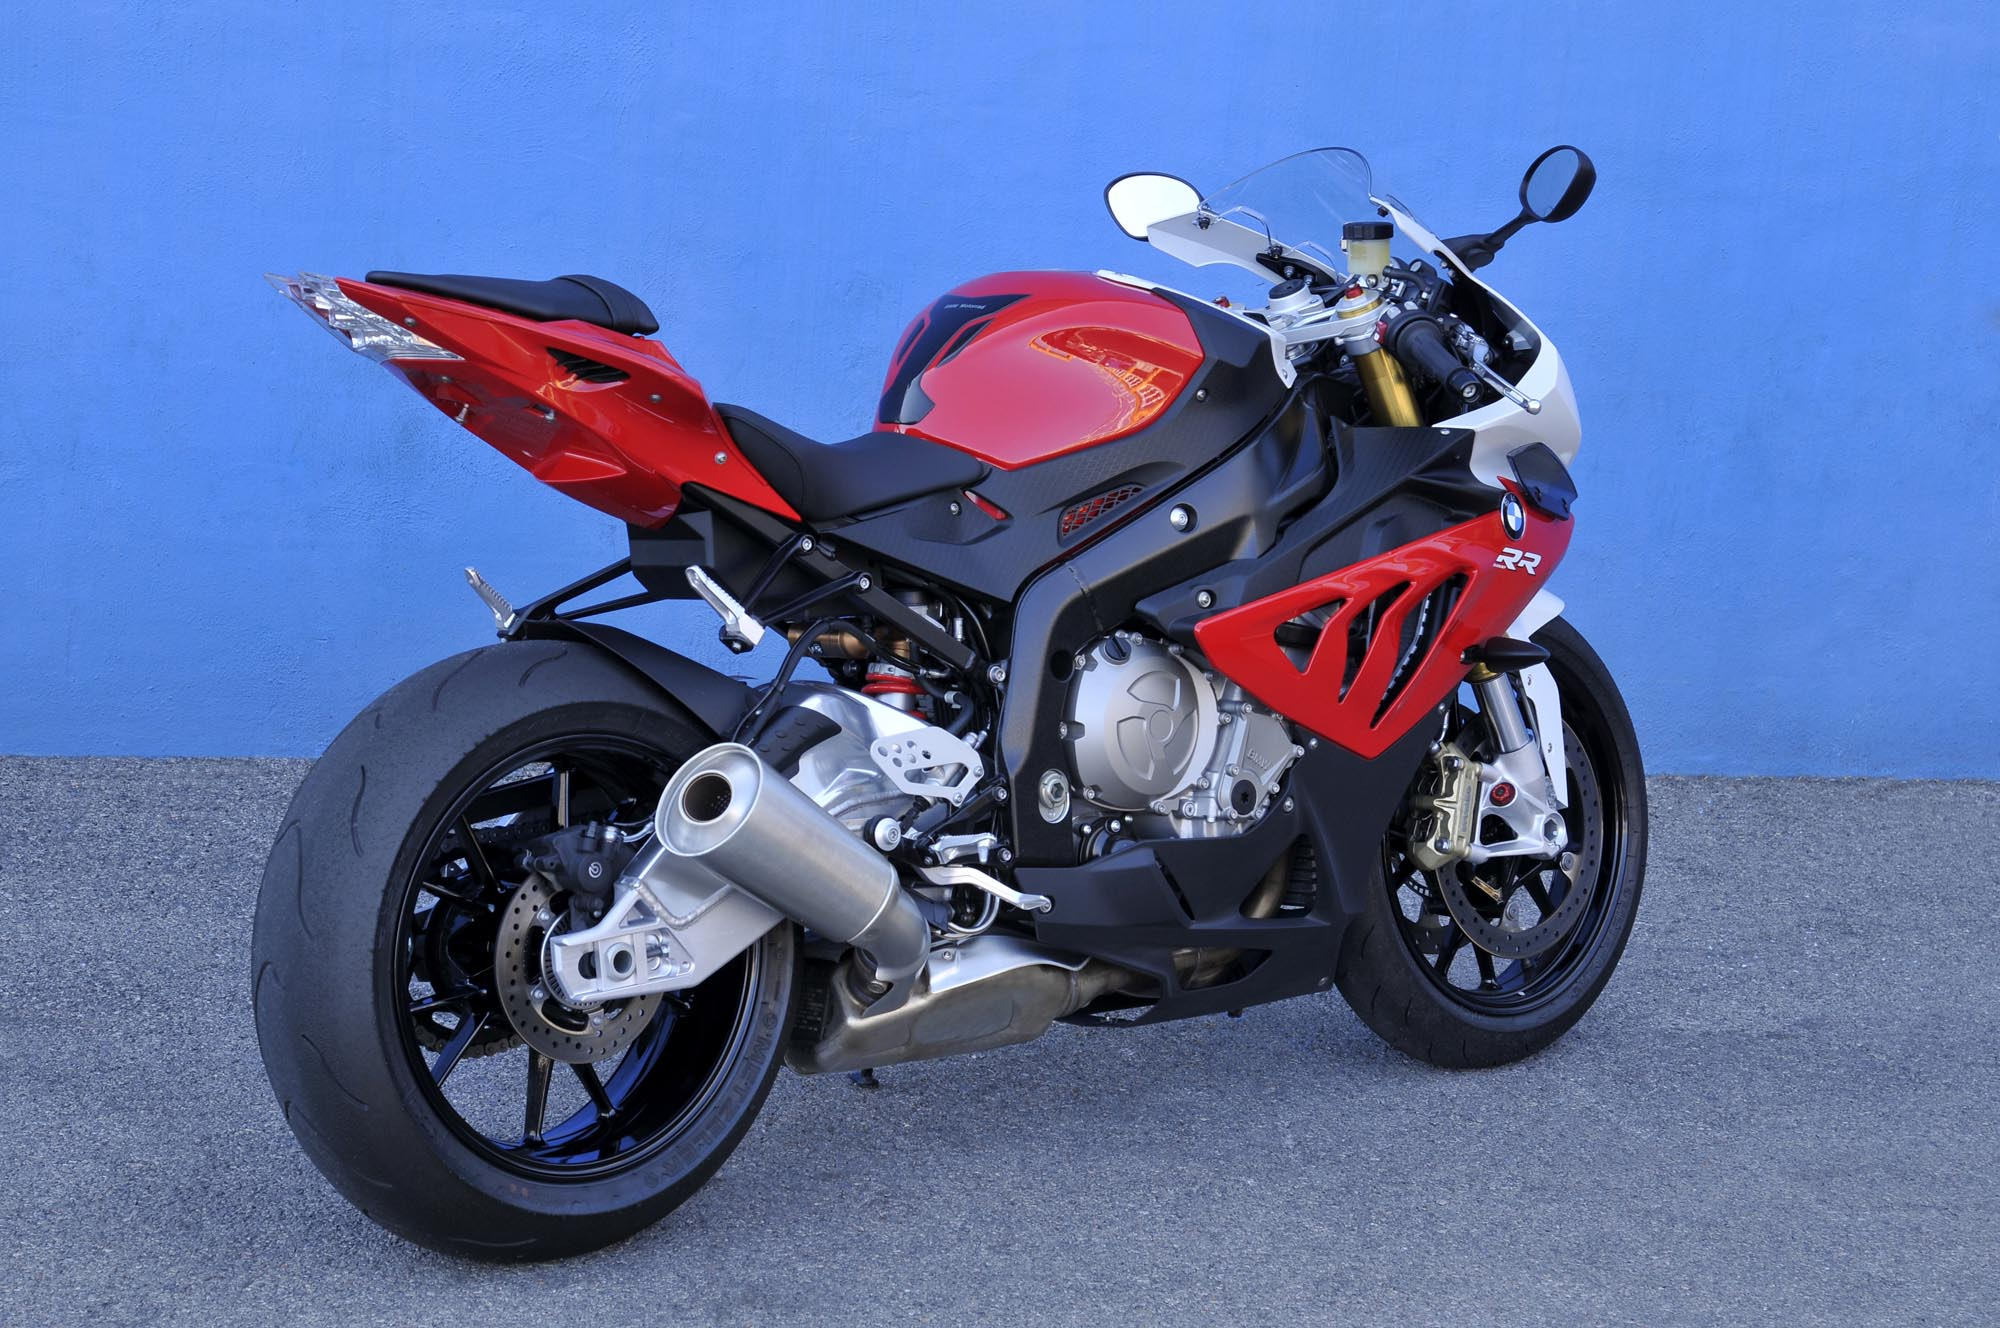 2012 bmw s1000rr moto zombdrive com. Black Bedroom Furniture Sets. Home Design Ideas